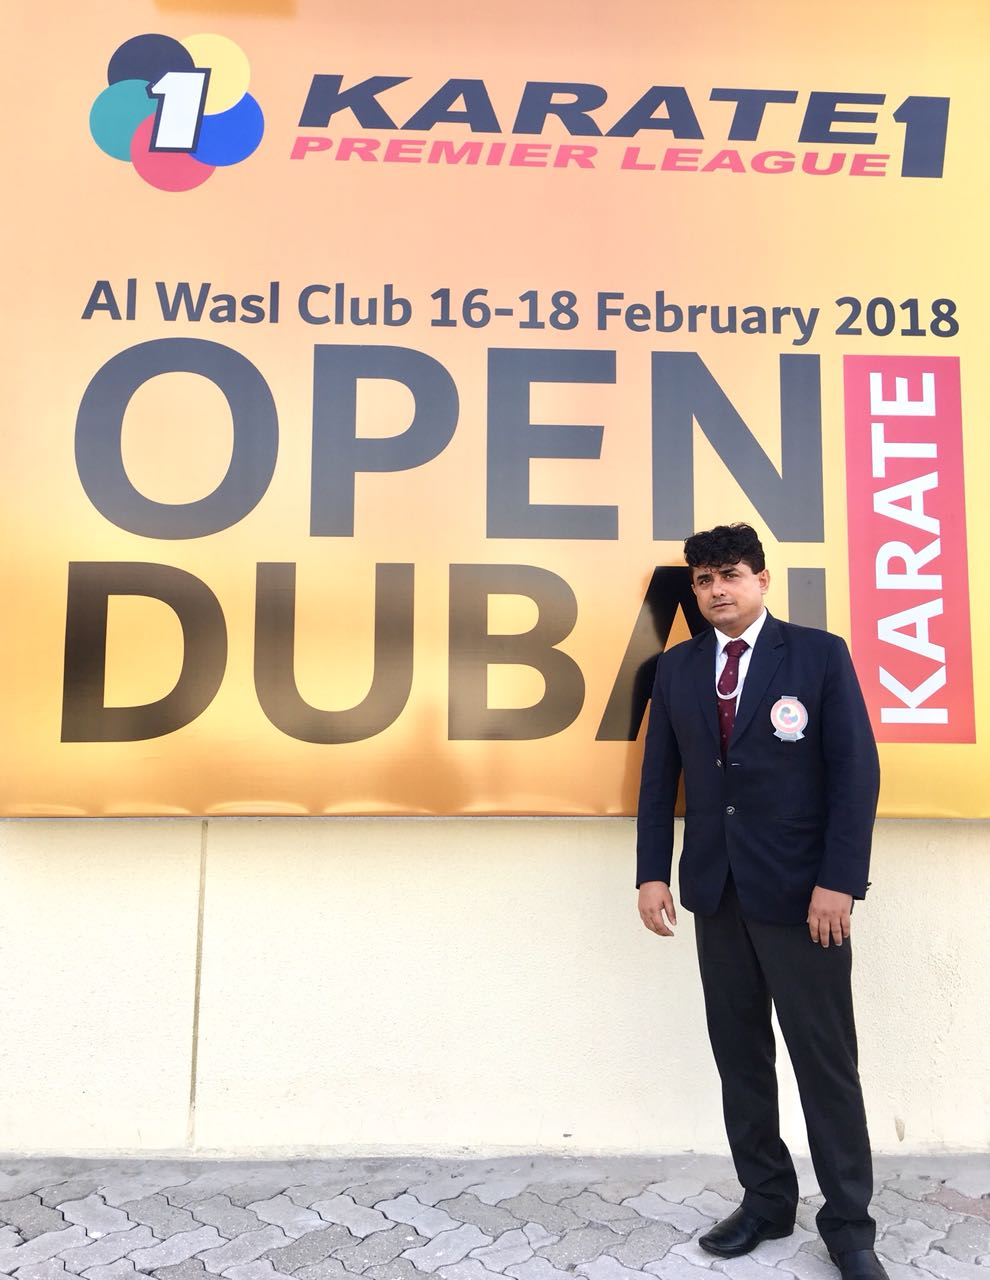 Karate premier League Al wasl Club